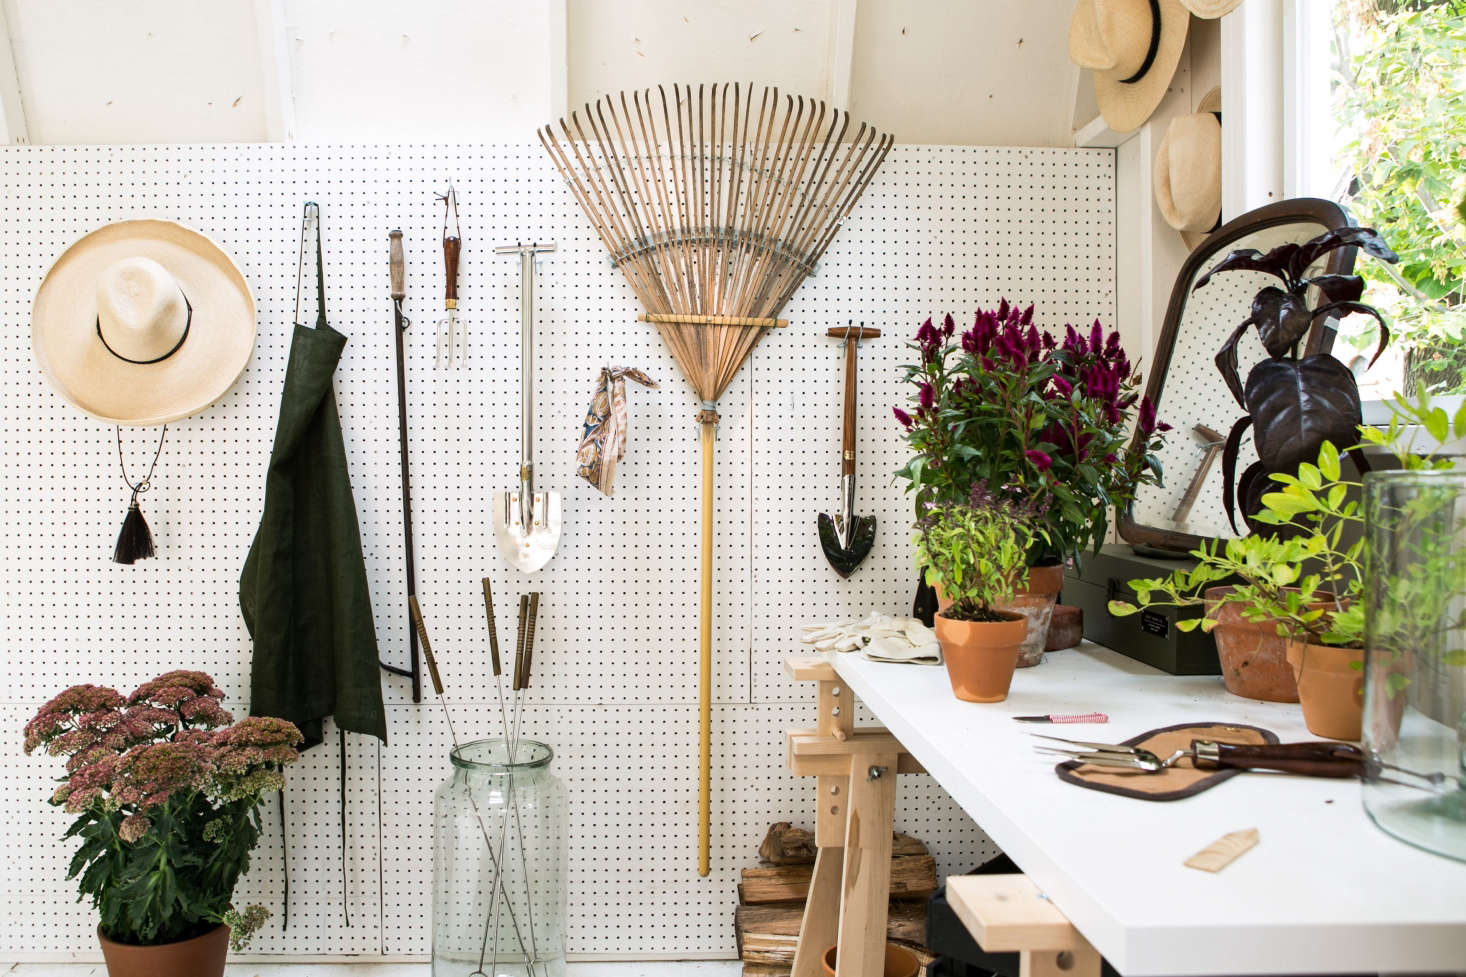 Every foodie farmer needs an inspiring garden shed, whether it&#8